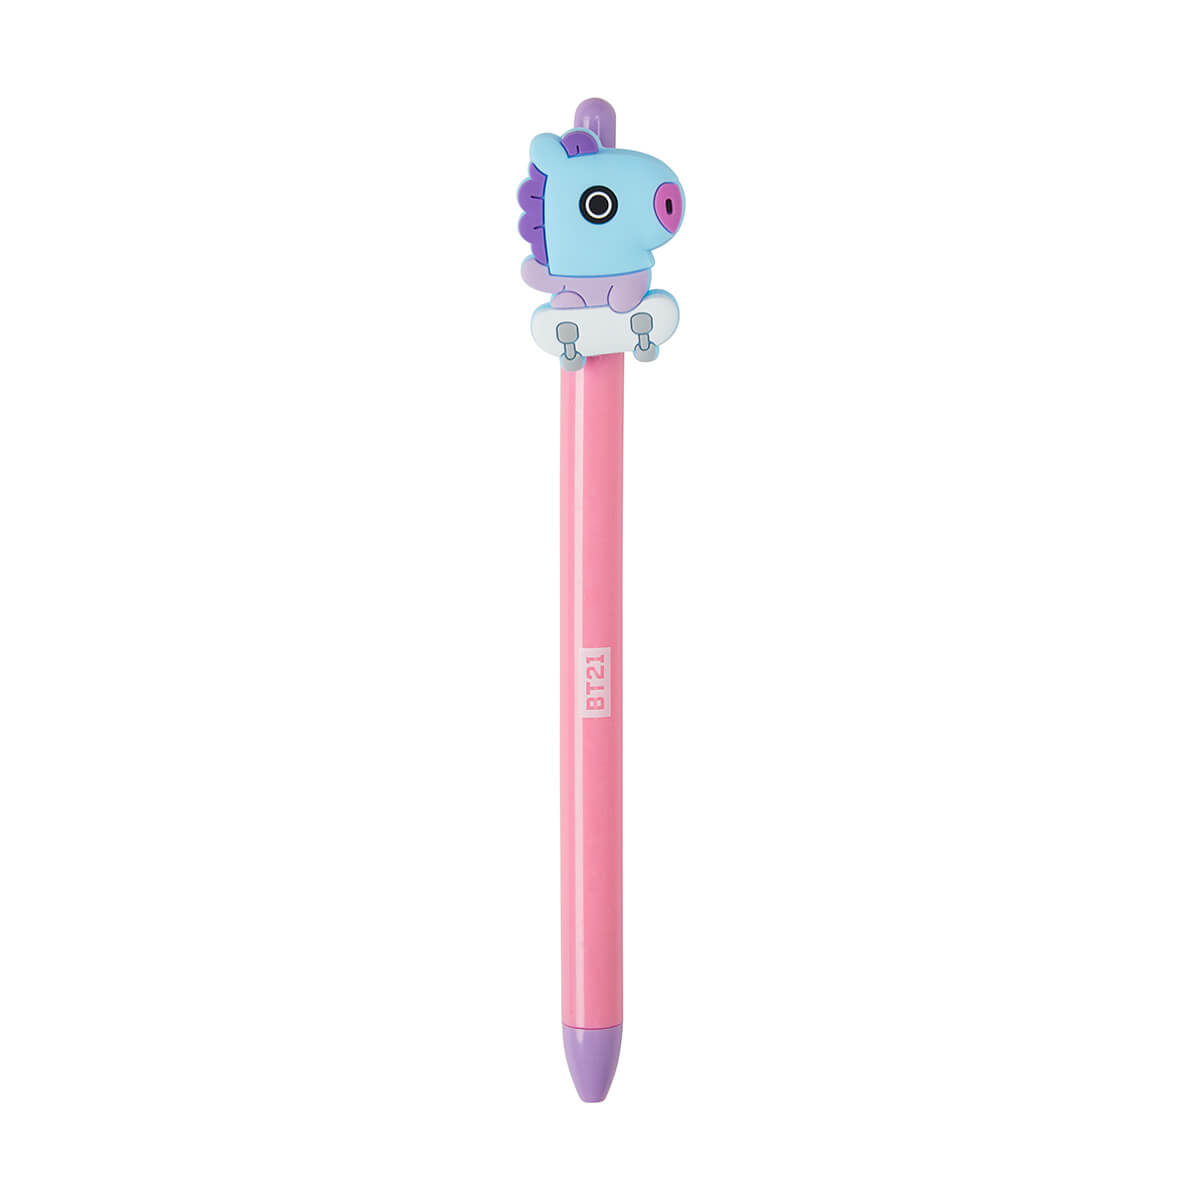 BT21 MANG HEART Gel Pen